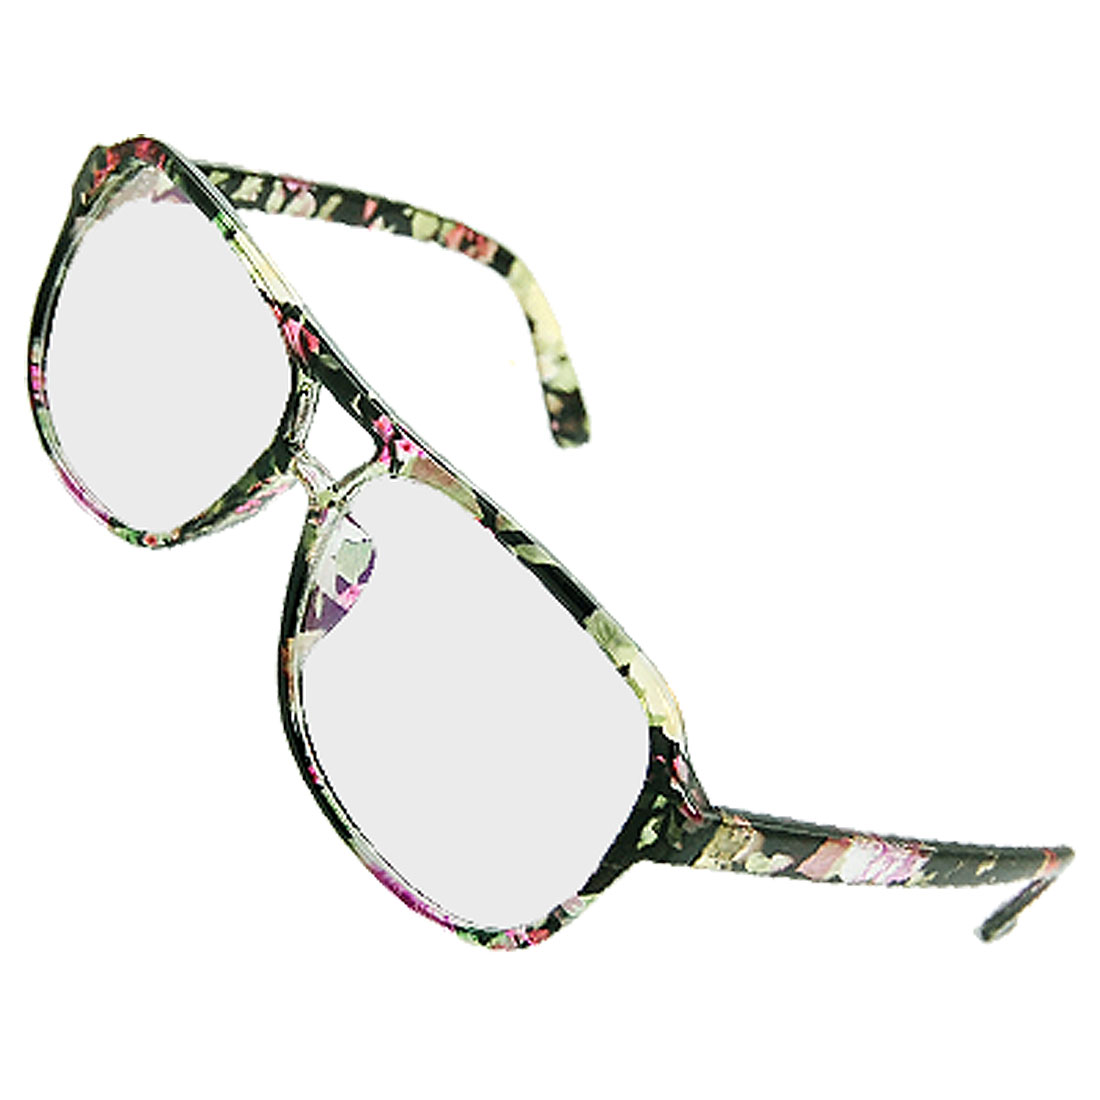 Floral Printed Big Multi-coated Lens Plano Glasses for Ladies